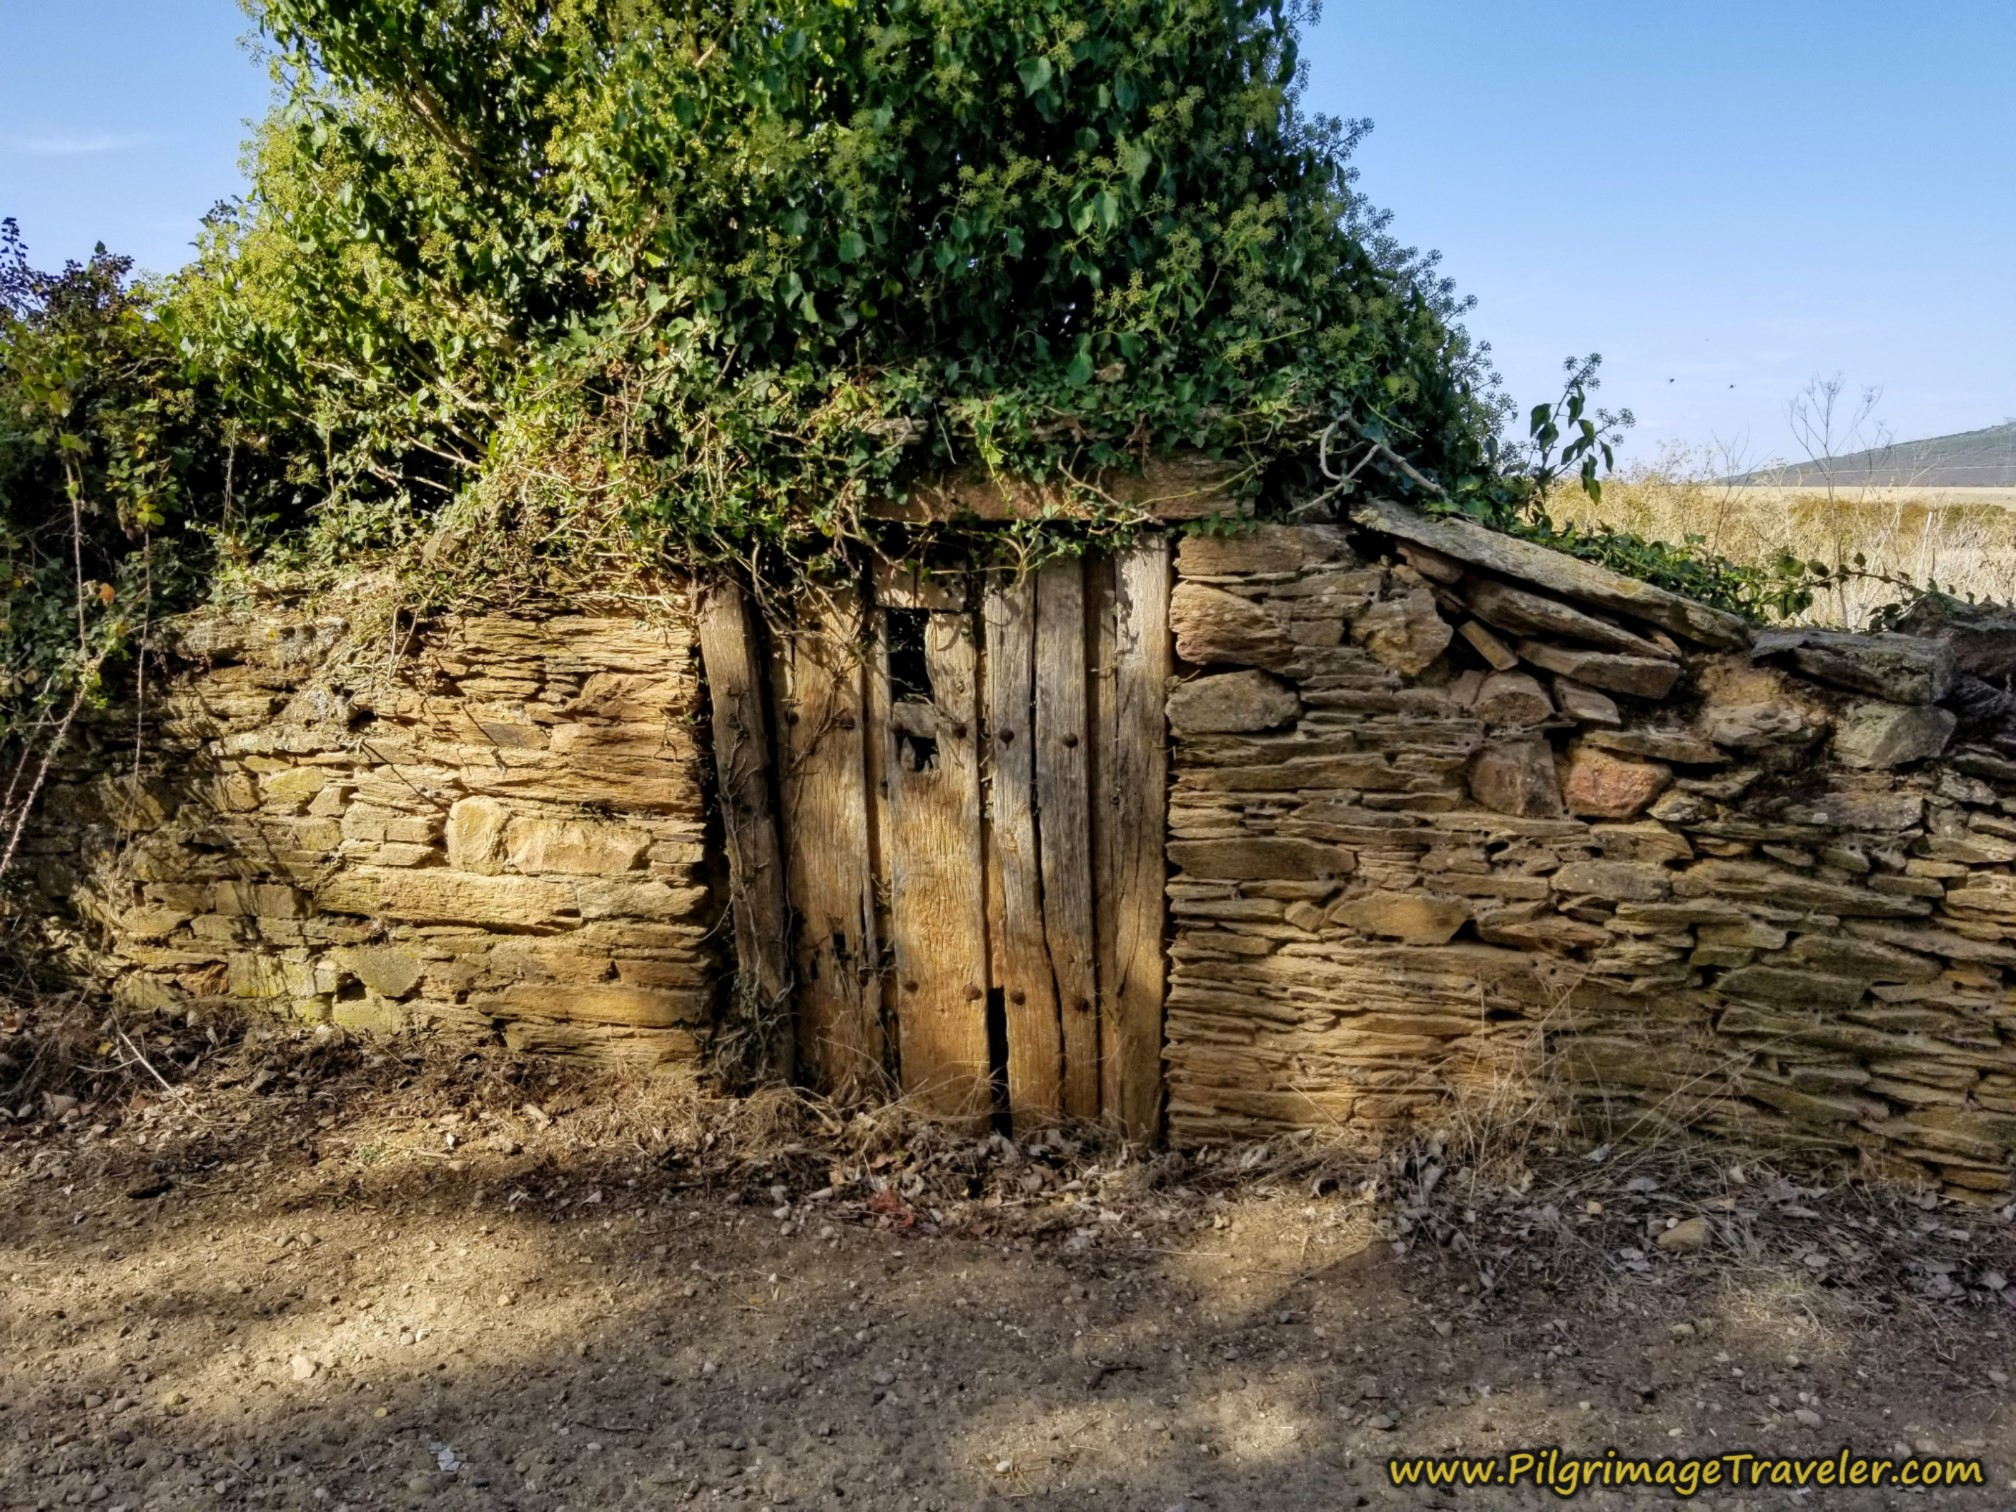 Walled Entrance to Town with Old Door on the Camino Sanabrés from Granja de Moreruela to Tábara